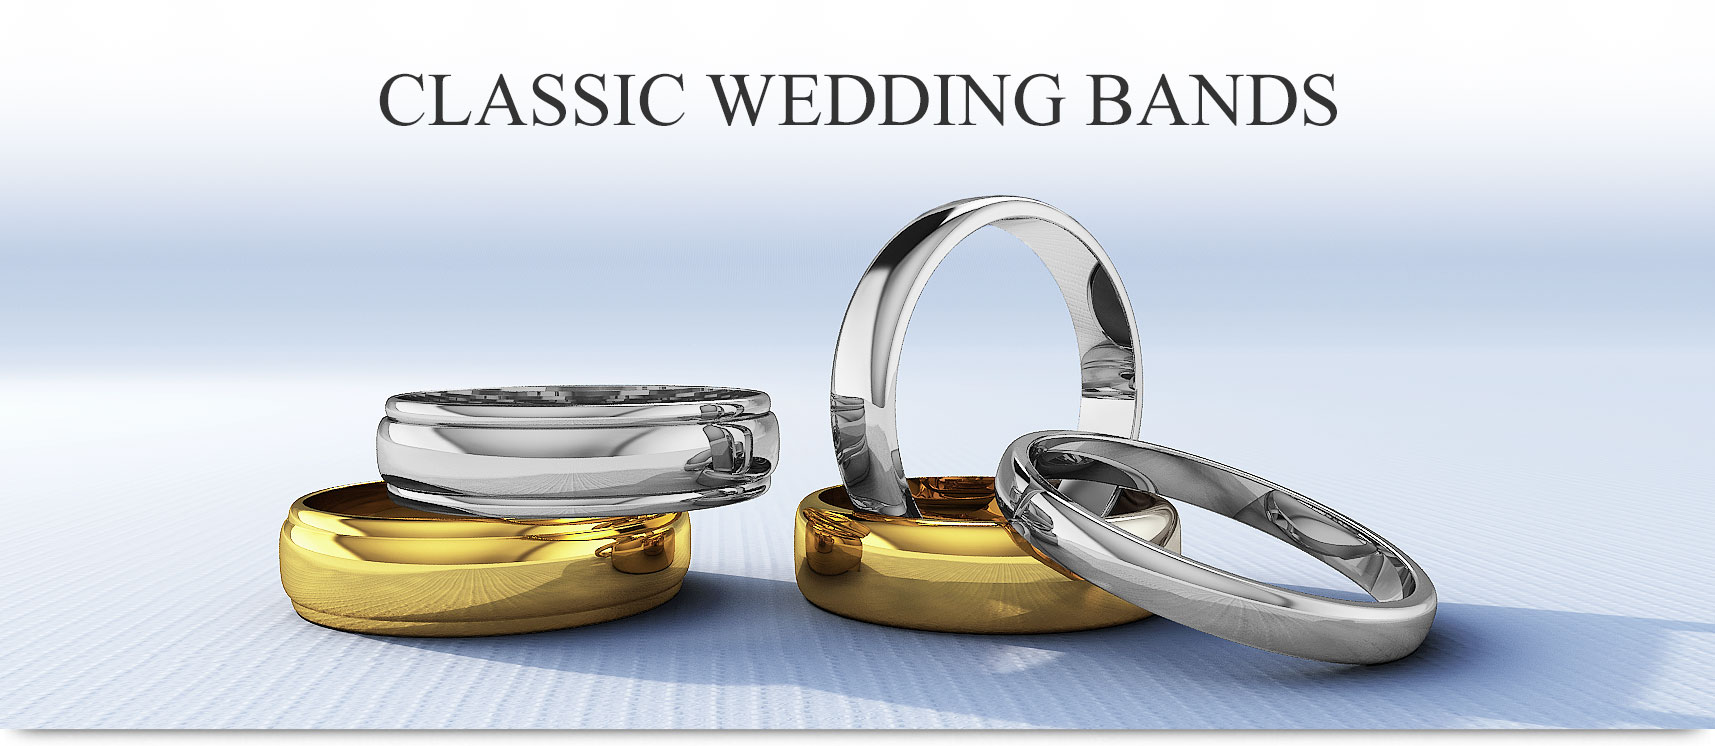 Classic Gold and Platinum Wedding Bands